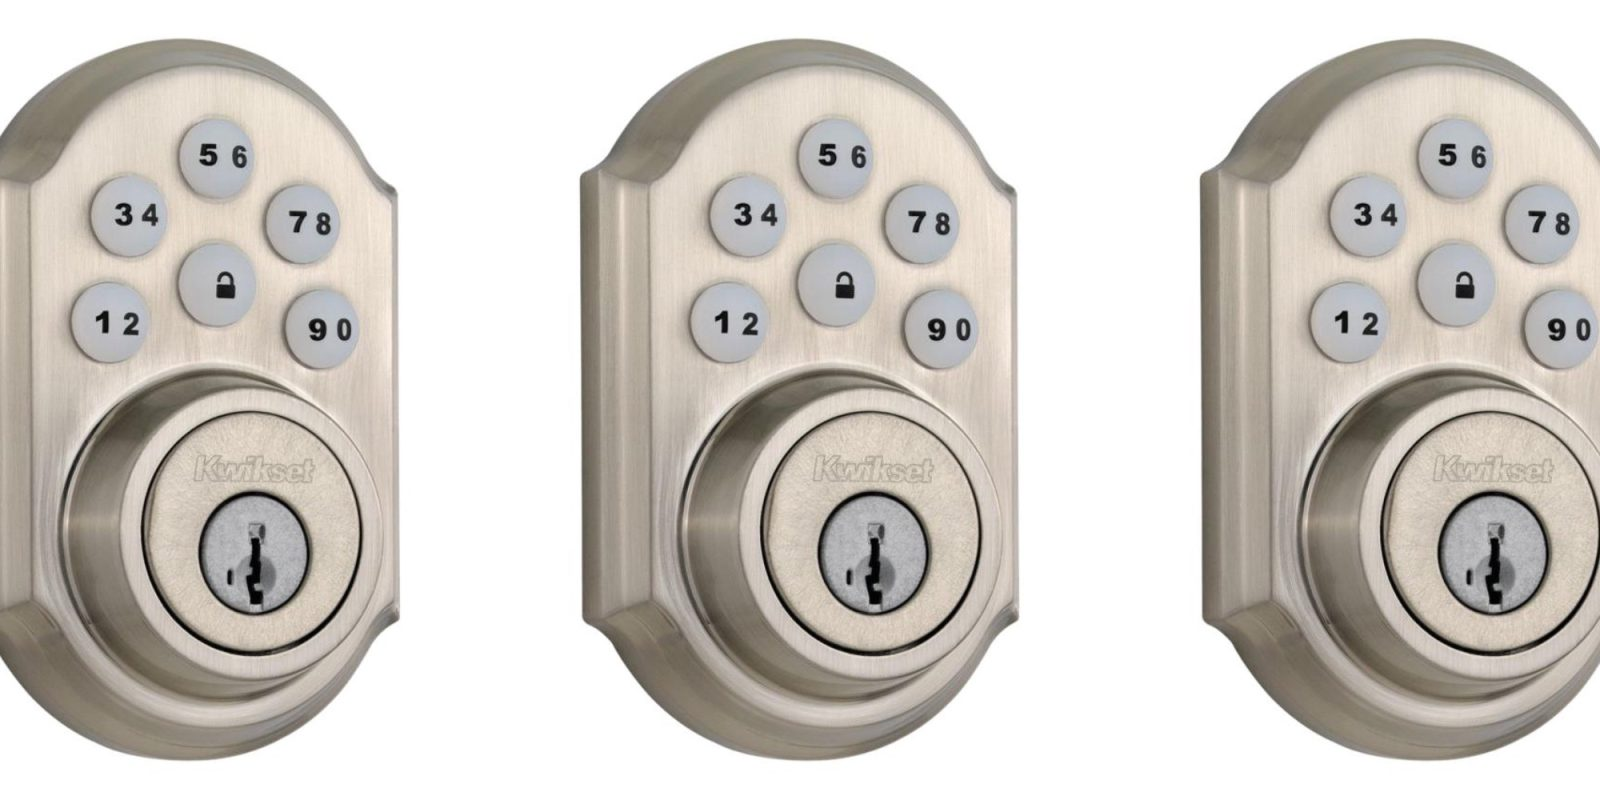 Kwikset's 910 Deadbolt arms your front door with Z-Wave for $149 (20% off)